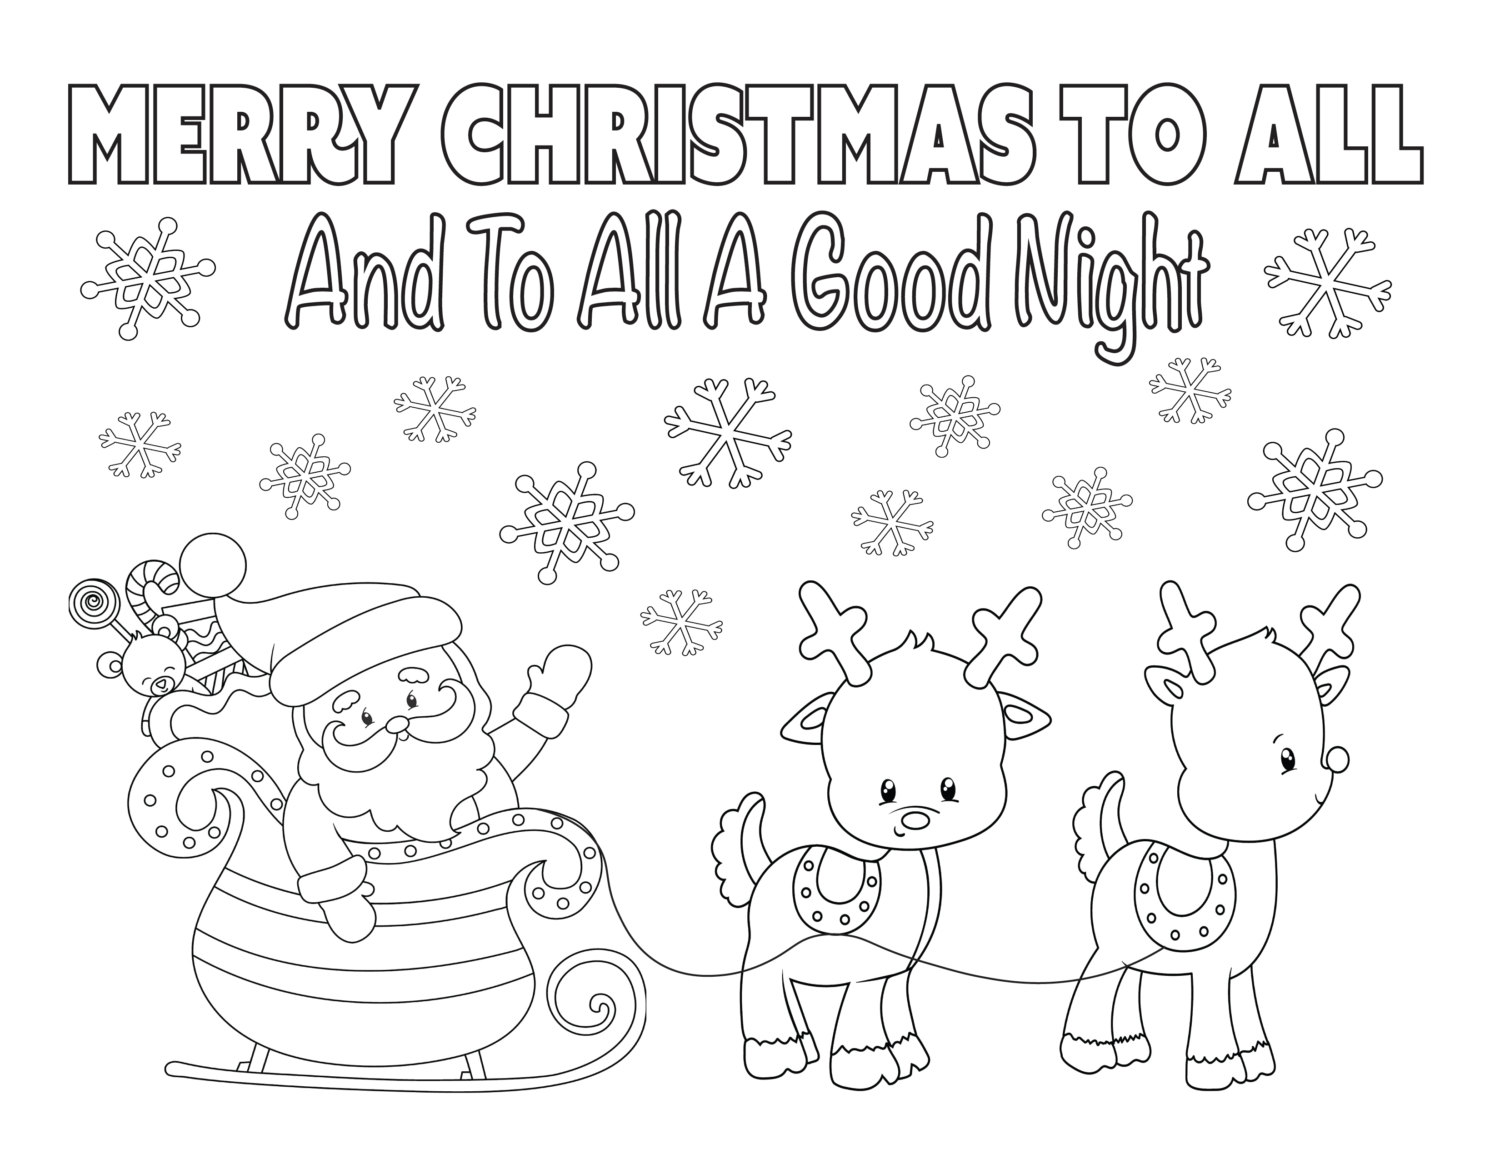 Santa In Australia Coloring Sheets With Christmas Page 8 5x11 Instant Download Printable Etsy